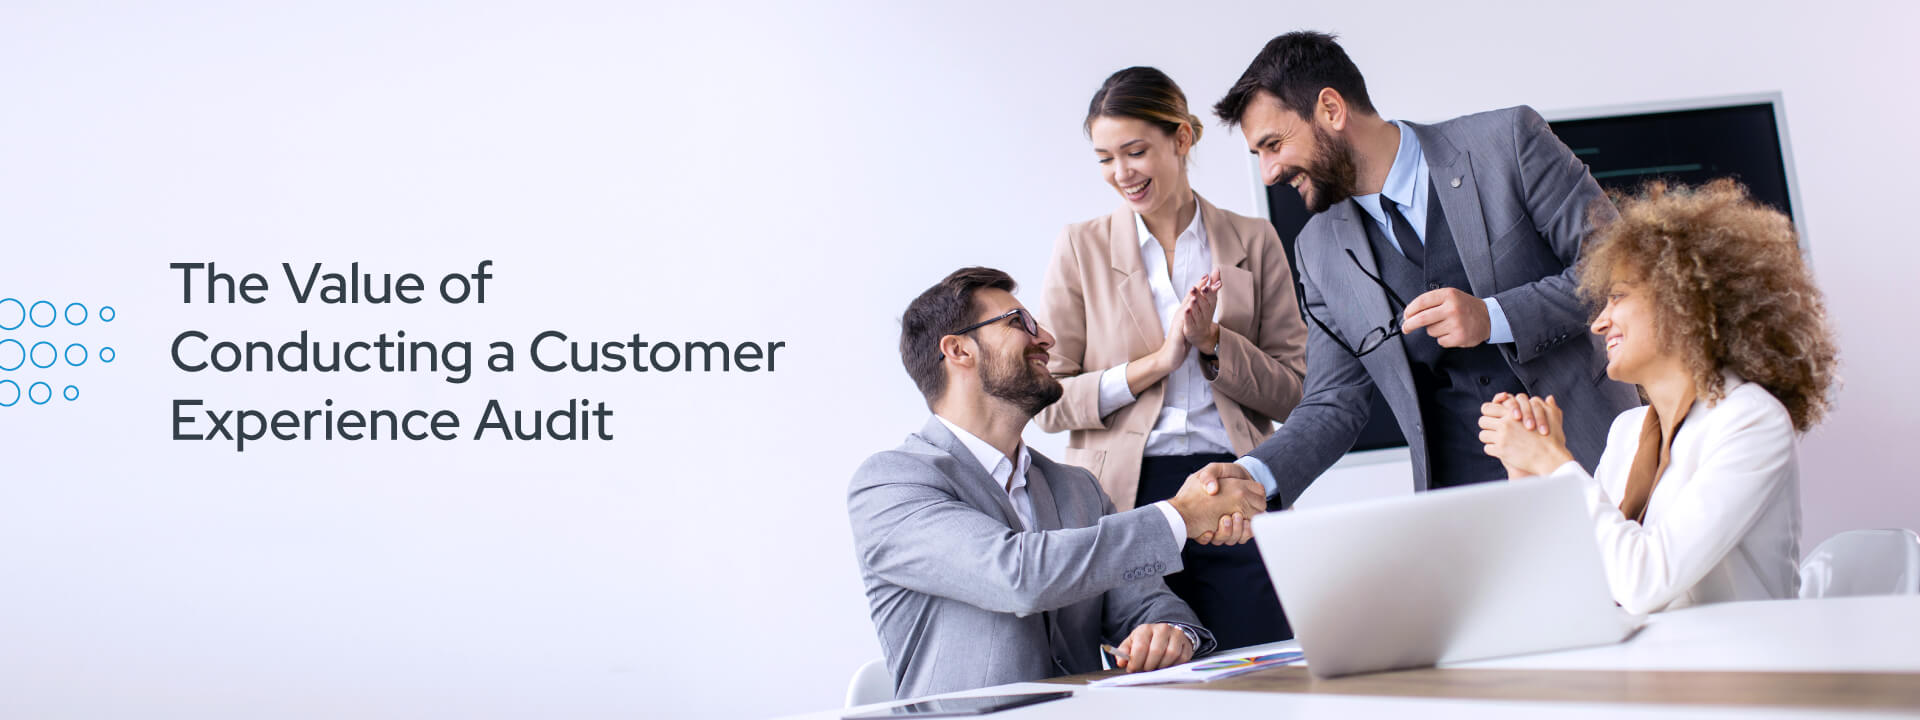 The Value of Conducting a Customer Experience Audit